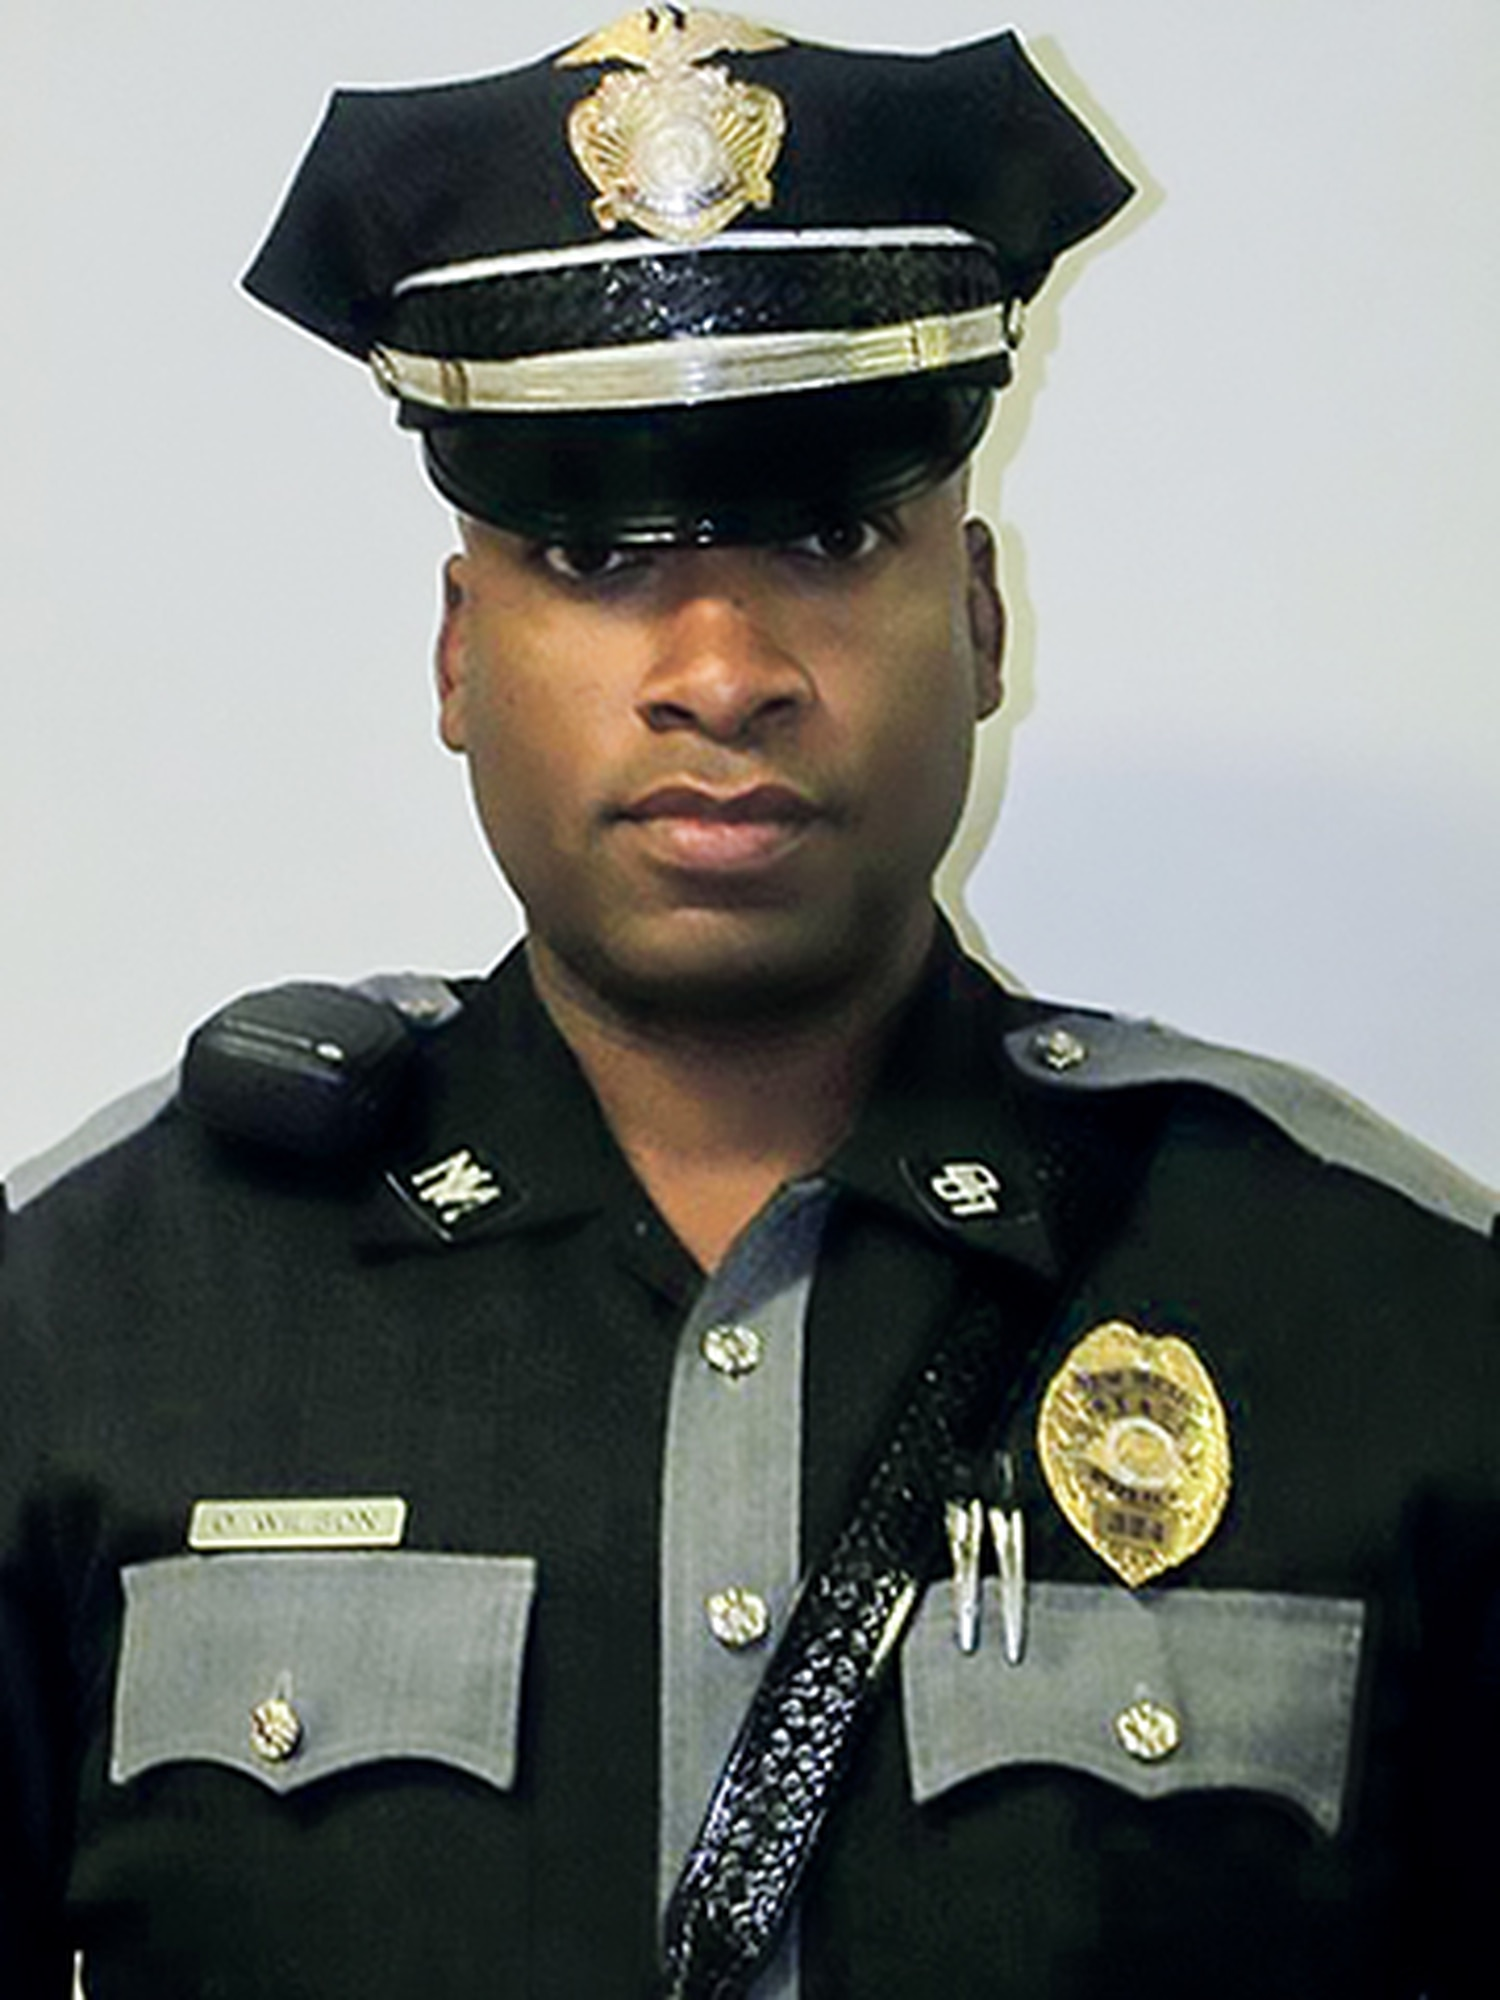 State police won't talk about their own internal investigation into Officer Oliver Wilson's conduct in the shooting.